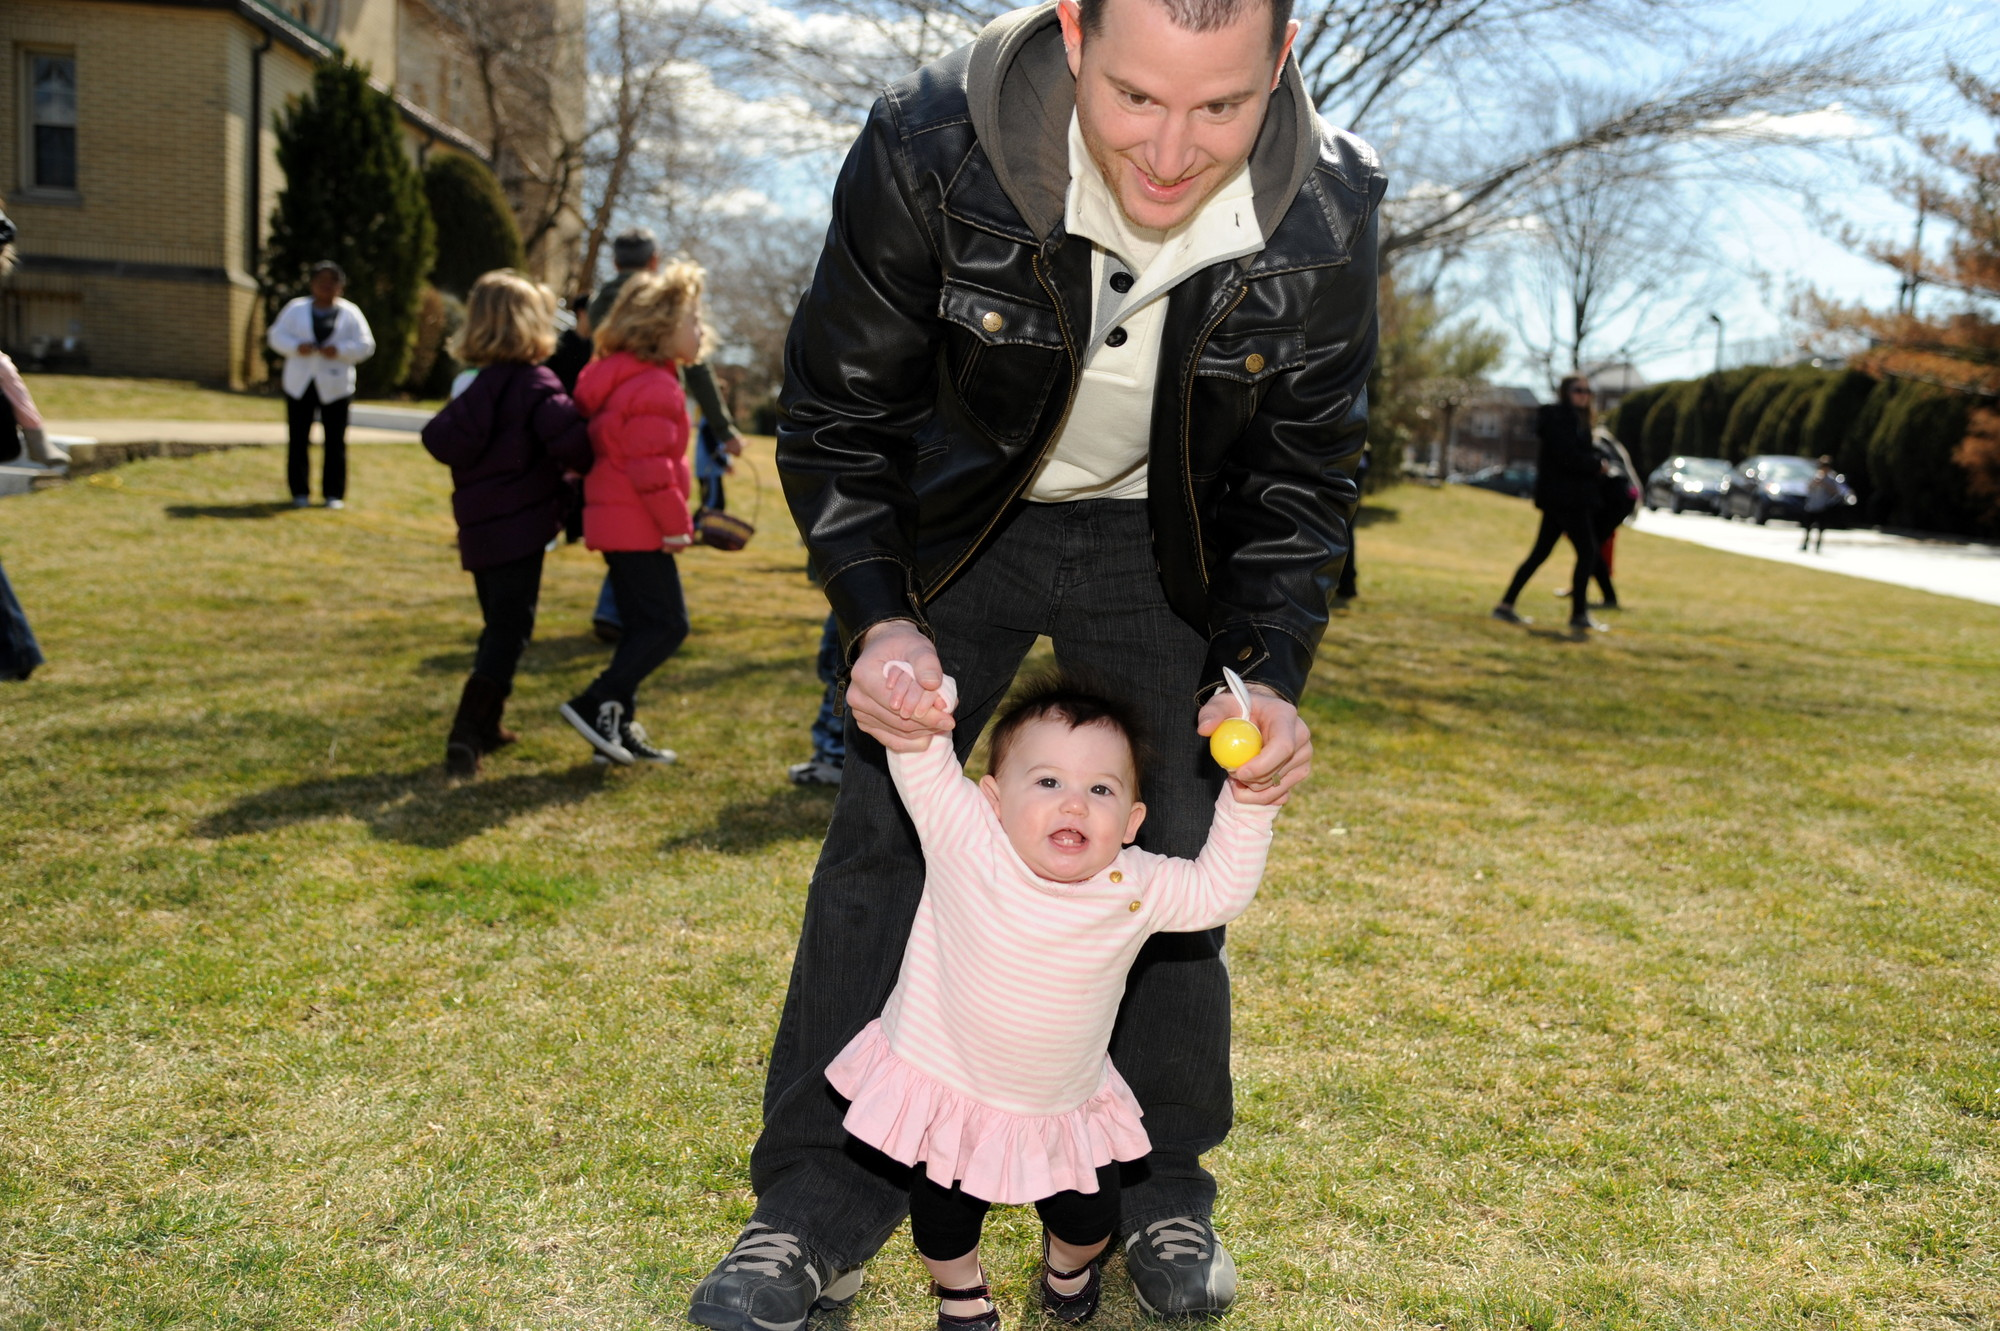 Donald McManamon helped his daughter Lana, eight months, in the egg race.